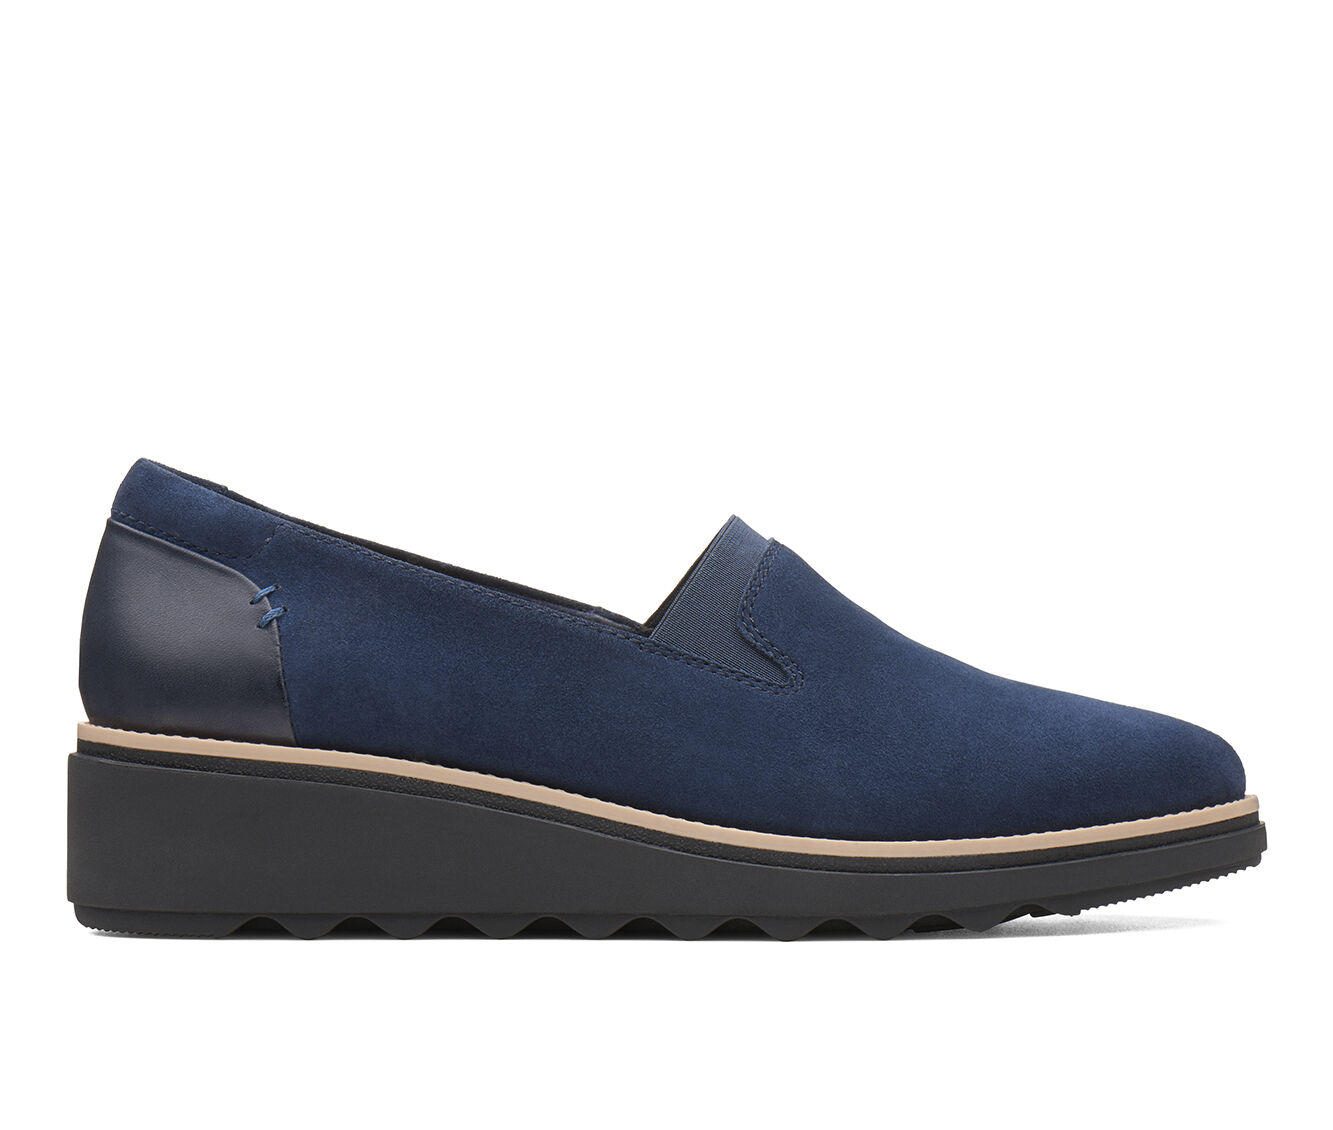 Women's Clarks Sharon Dolly Shoes Navy